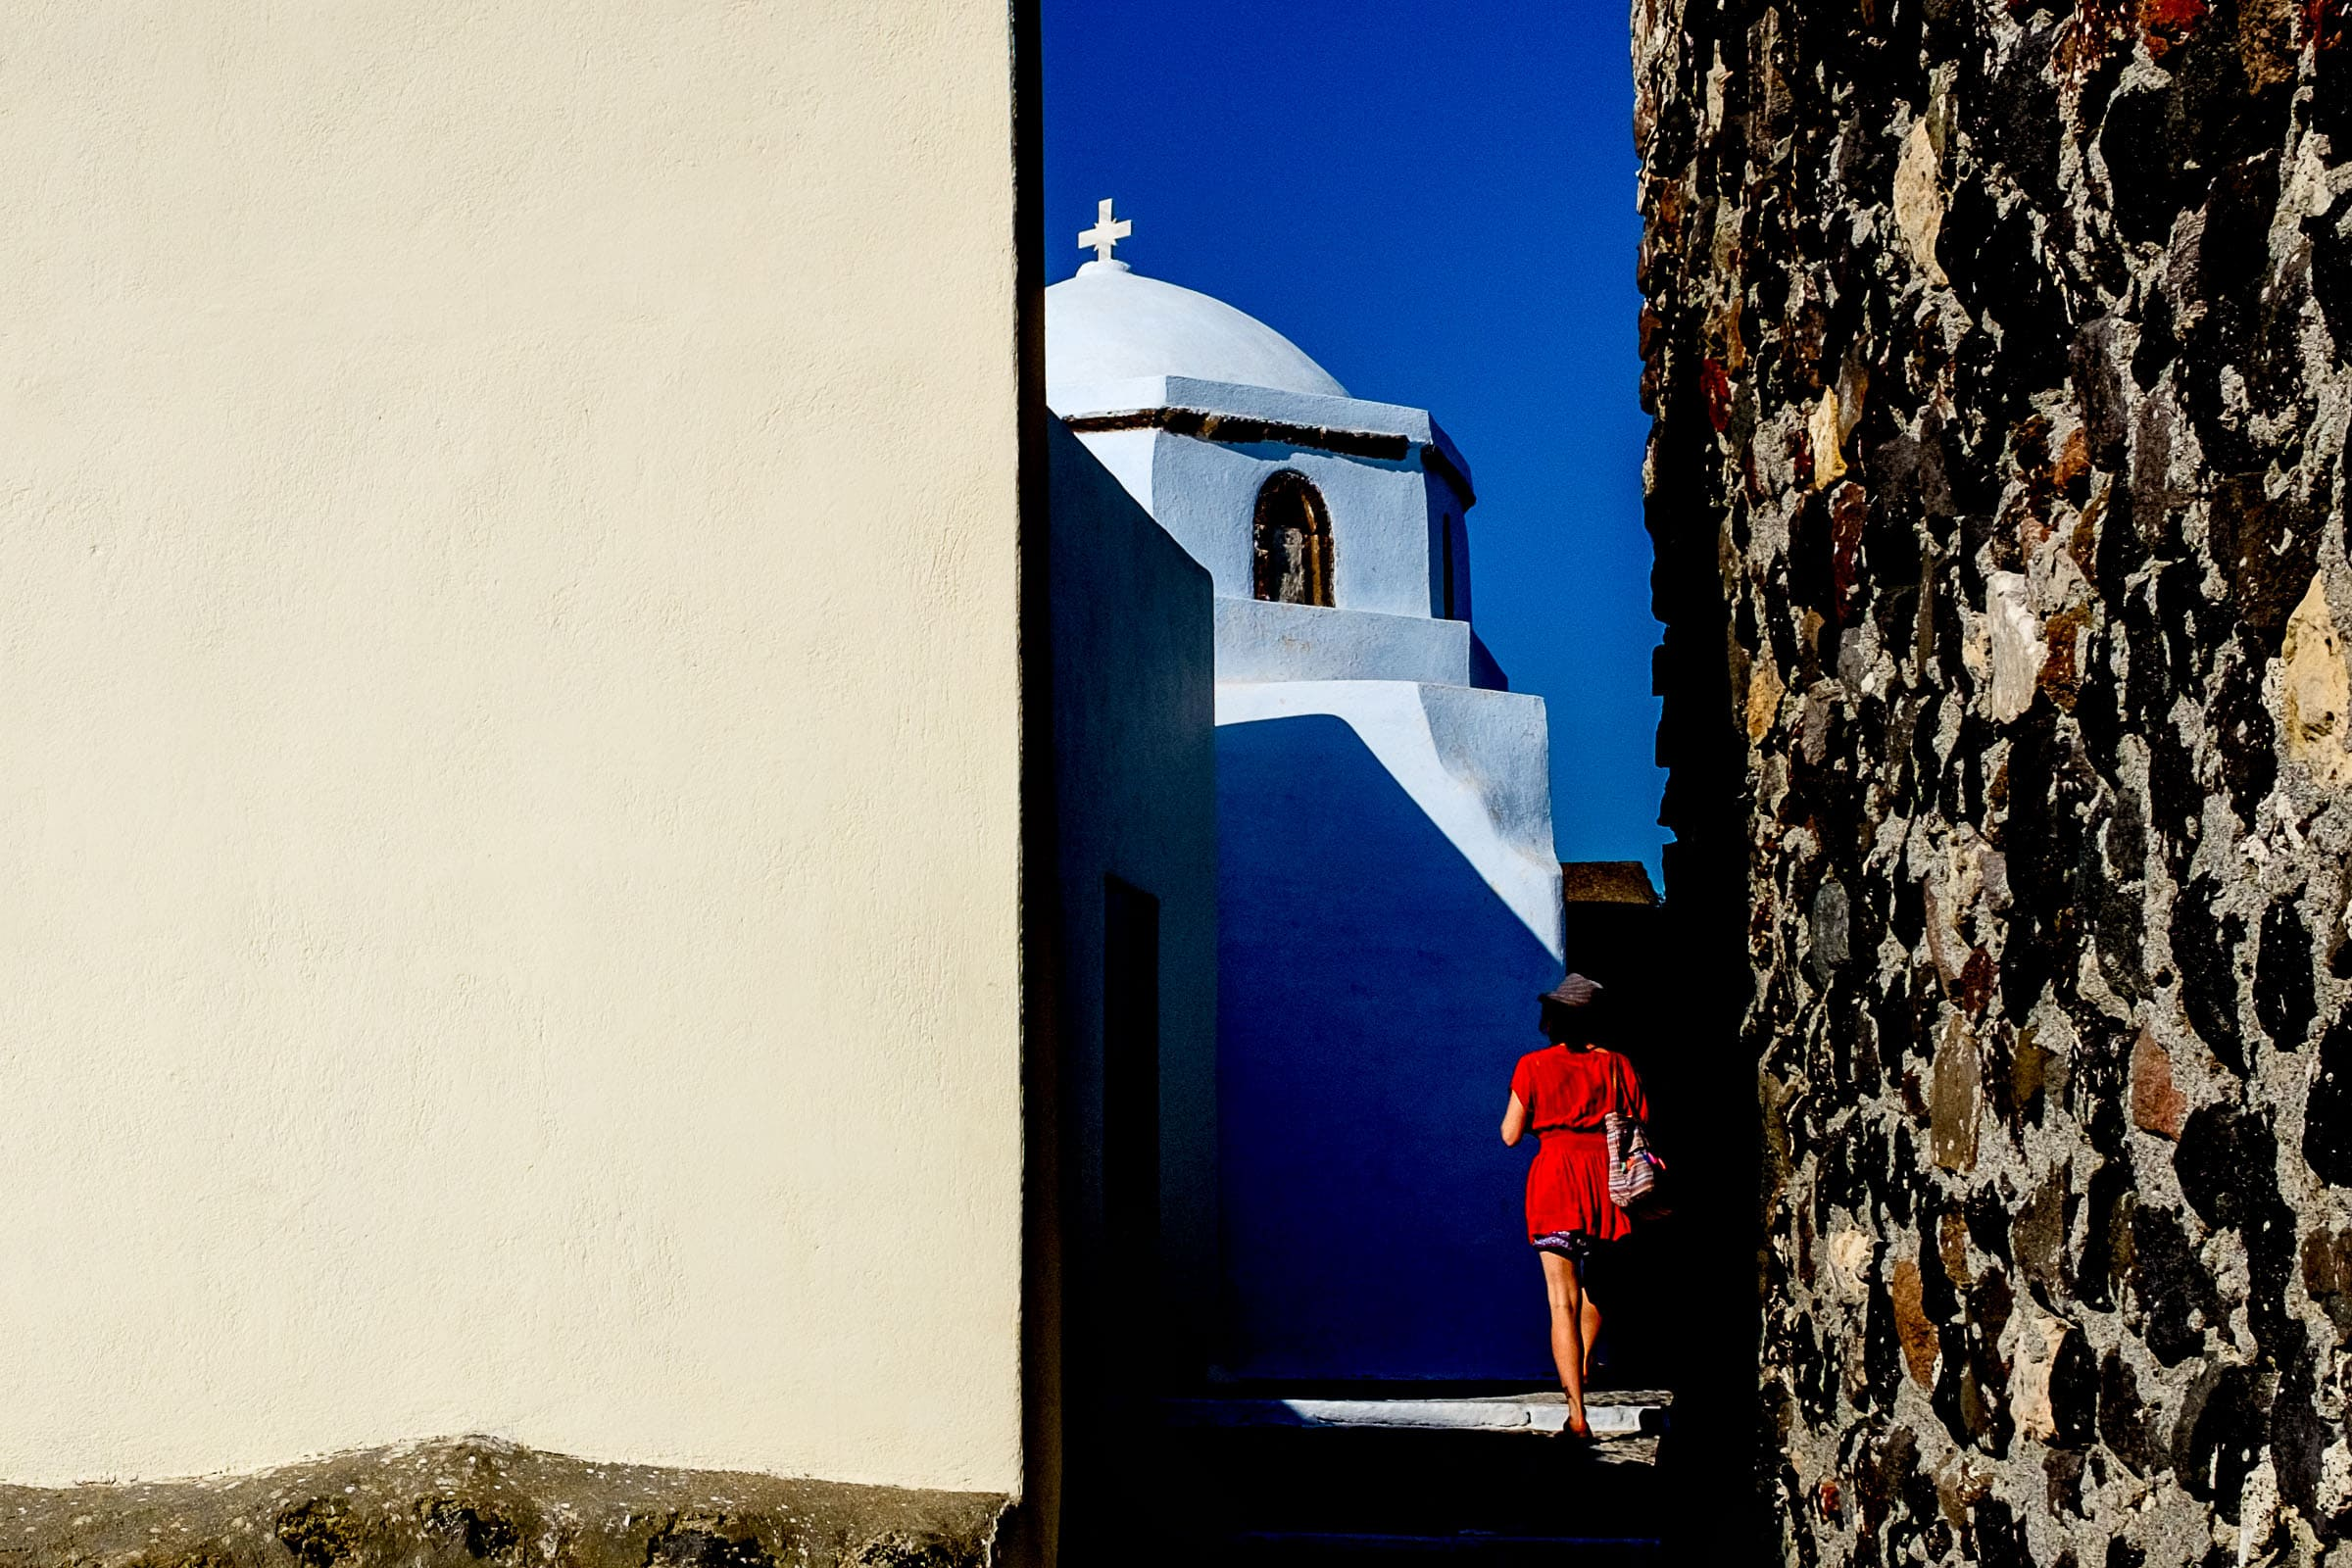 A woman in red walking through the back streets while exploring Santorini Engagement photo ideas